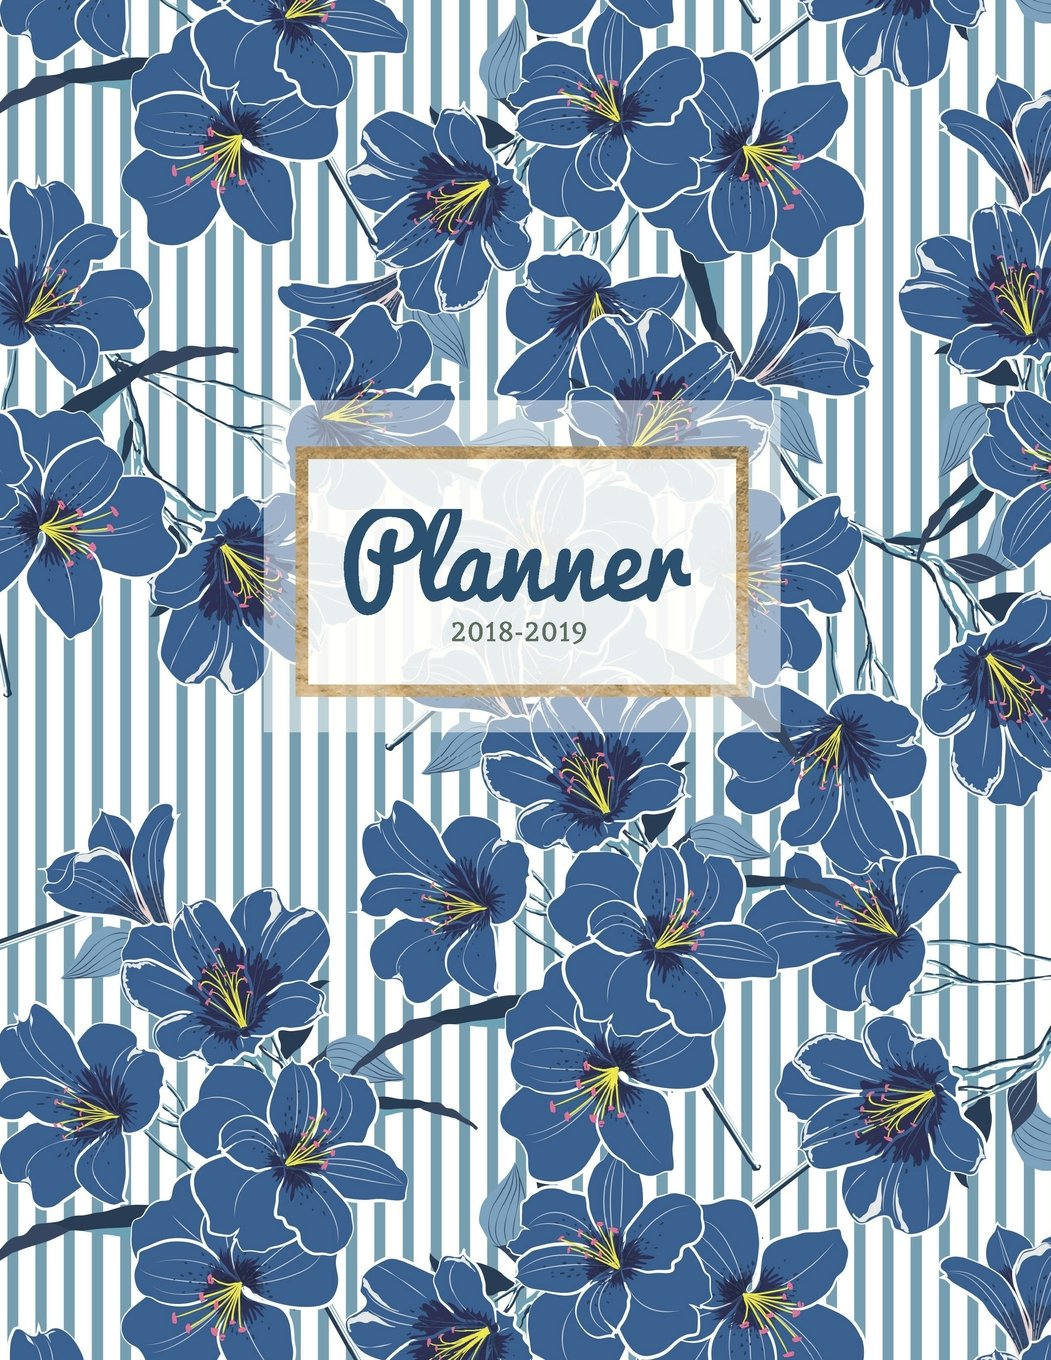 Planner 2018-2019: Floral 18-Month Weekly Planner  July 2018 - Dec 2019 Weekly View  To-Do Lists, Inspirational Quotes + Much More (Floral Planners) (Volume 1) pdf epub